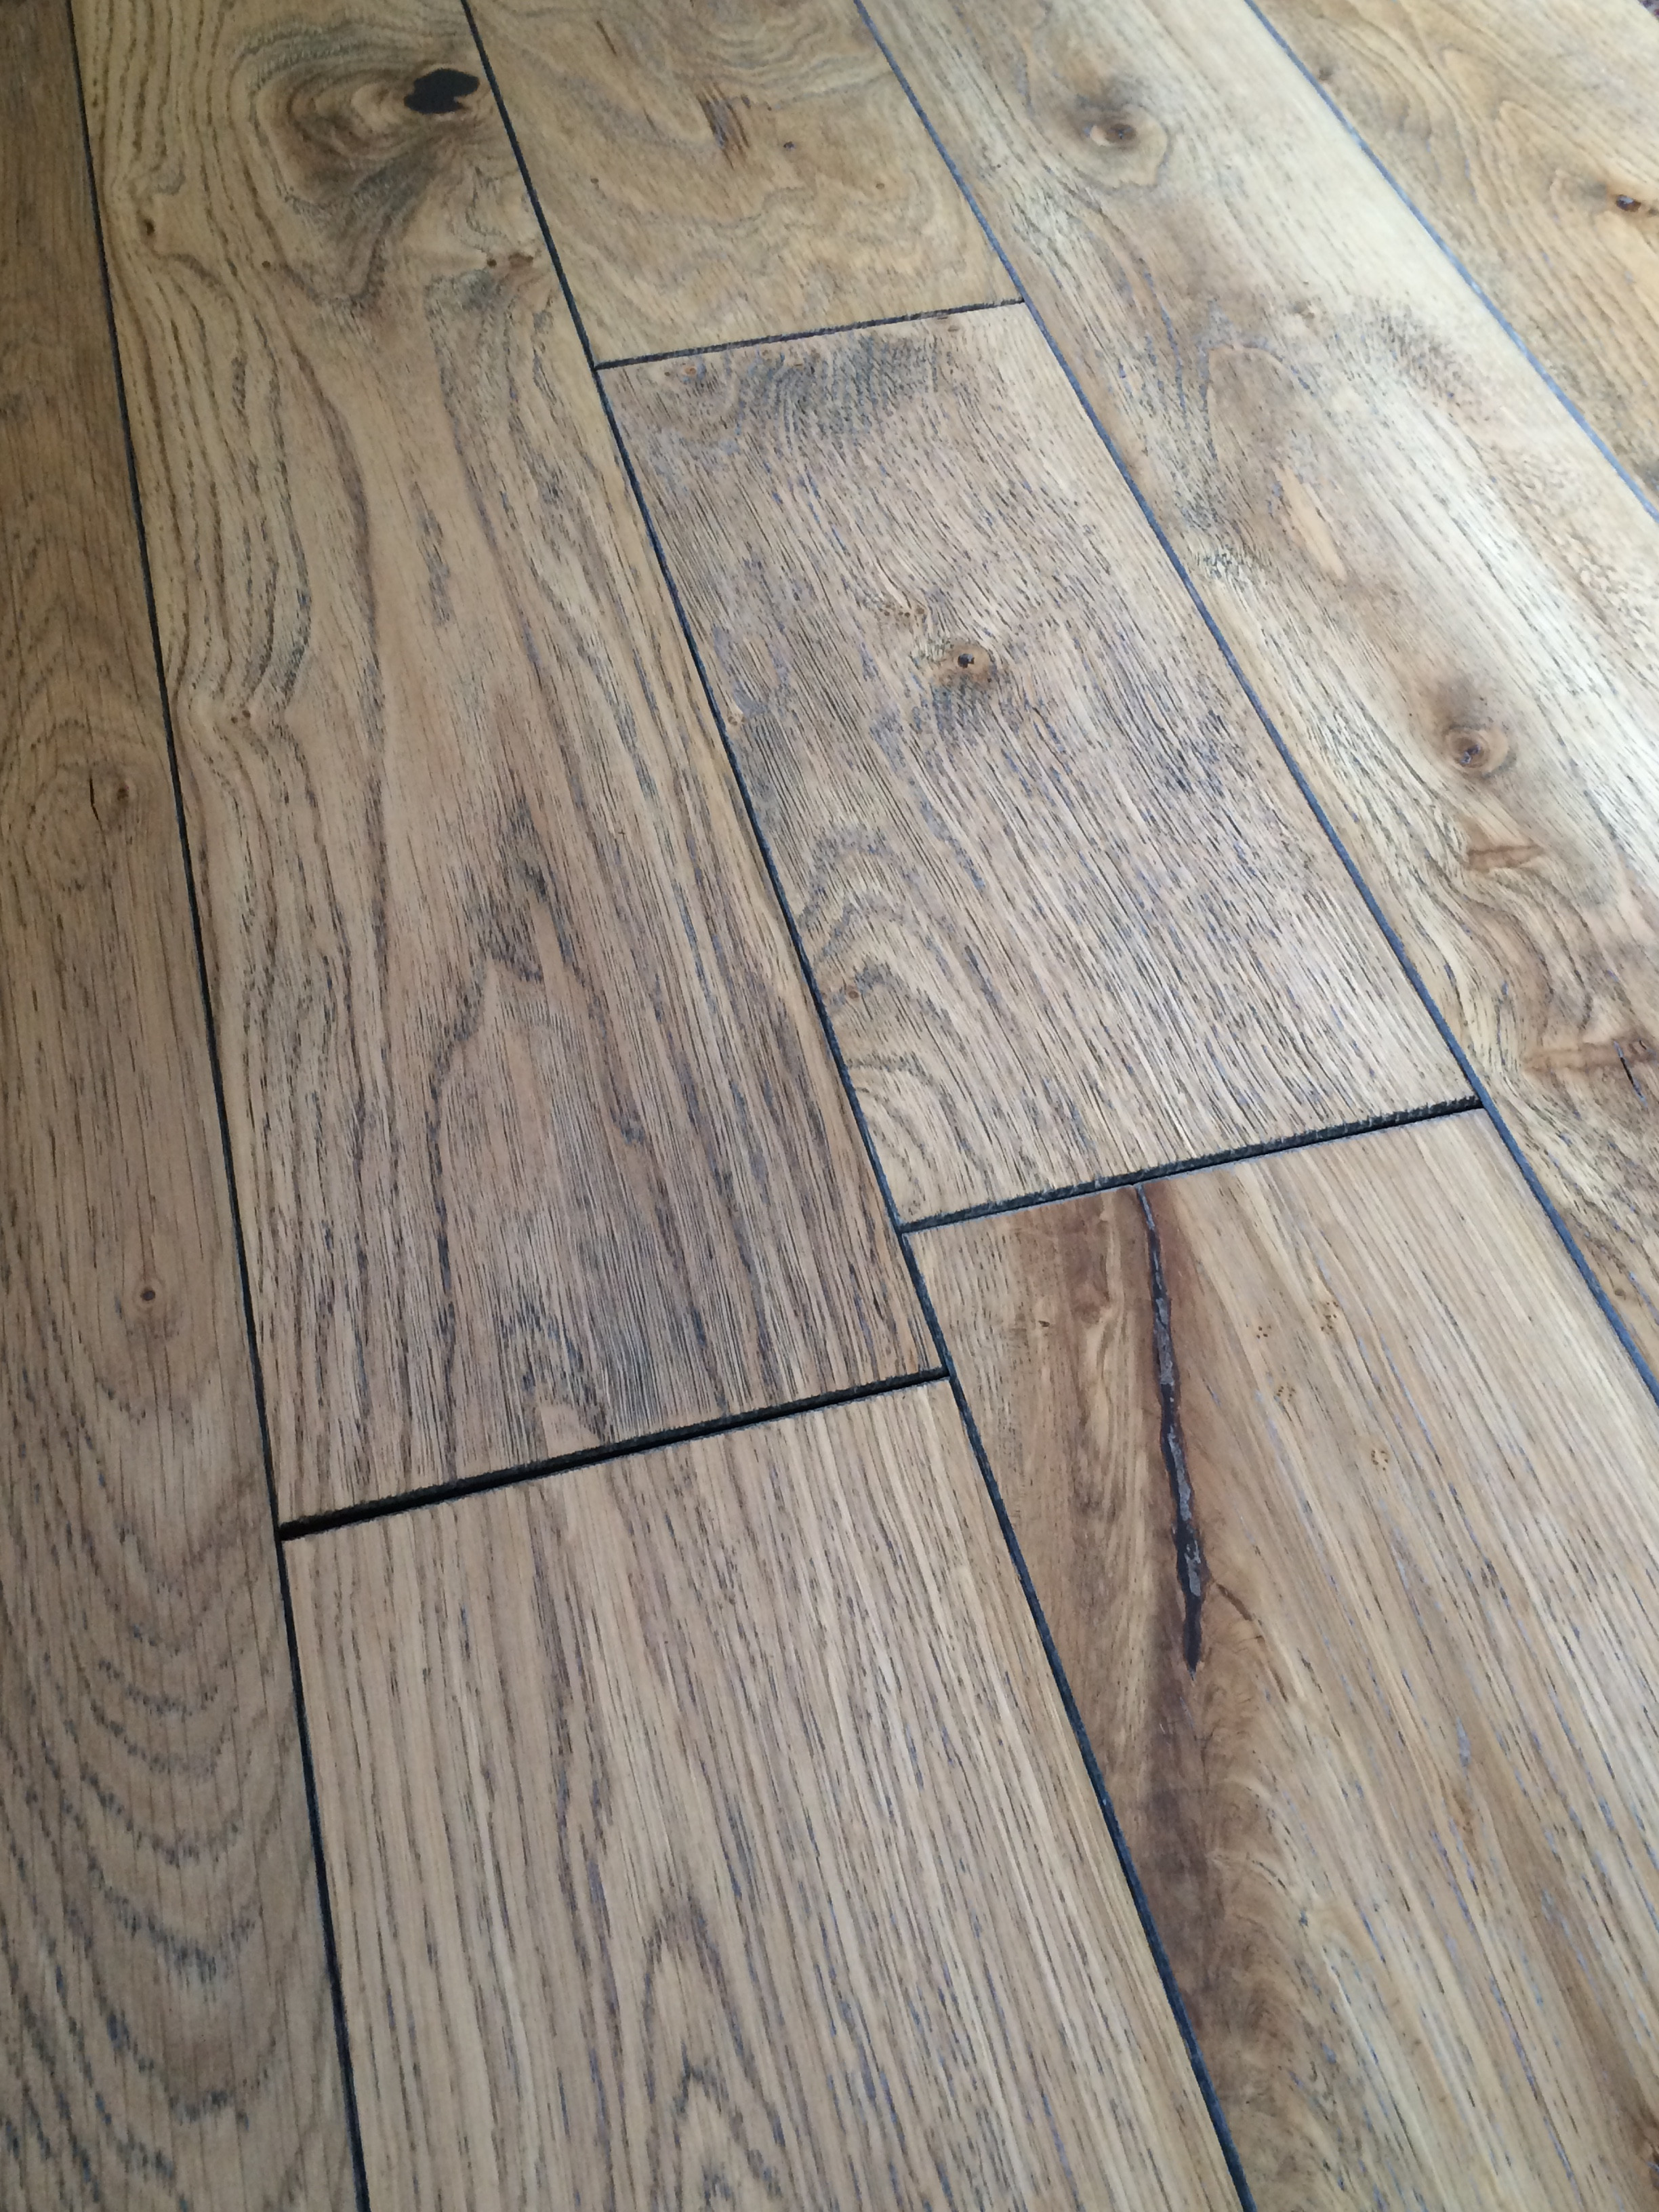 Engineered wood flooring lugano brushed white engineered oak wood flooring 125 x 18/5mm MUIFNKZ